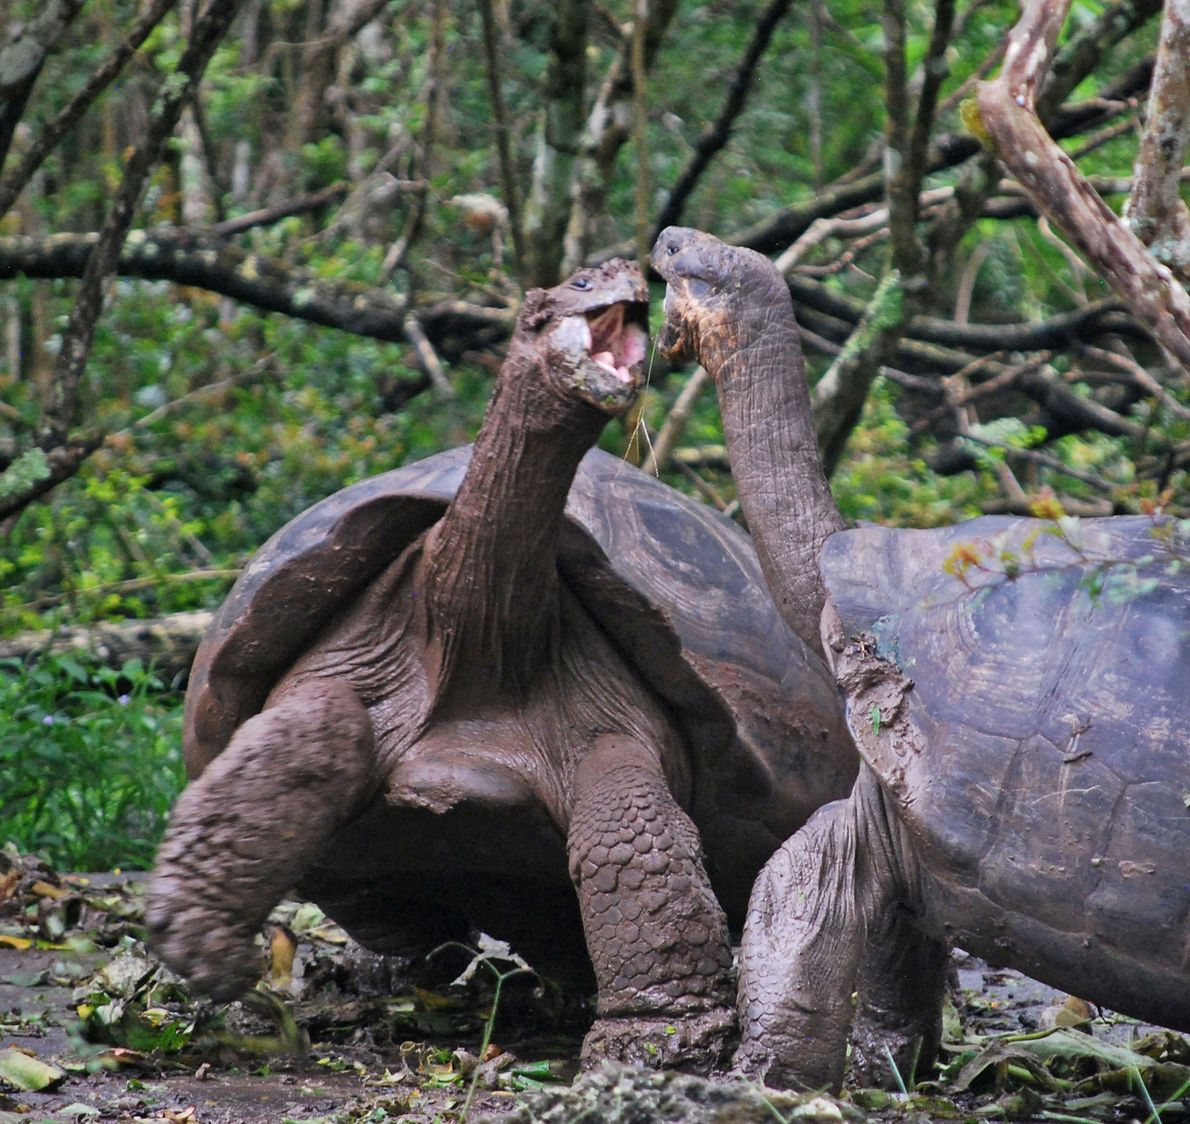 Galápagos tortoises snap at each other in the Galápagos Islands.